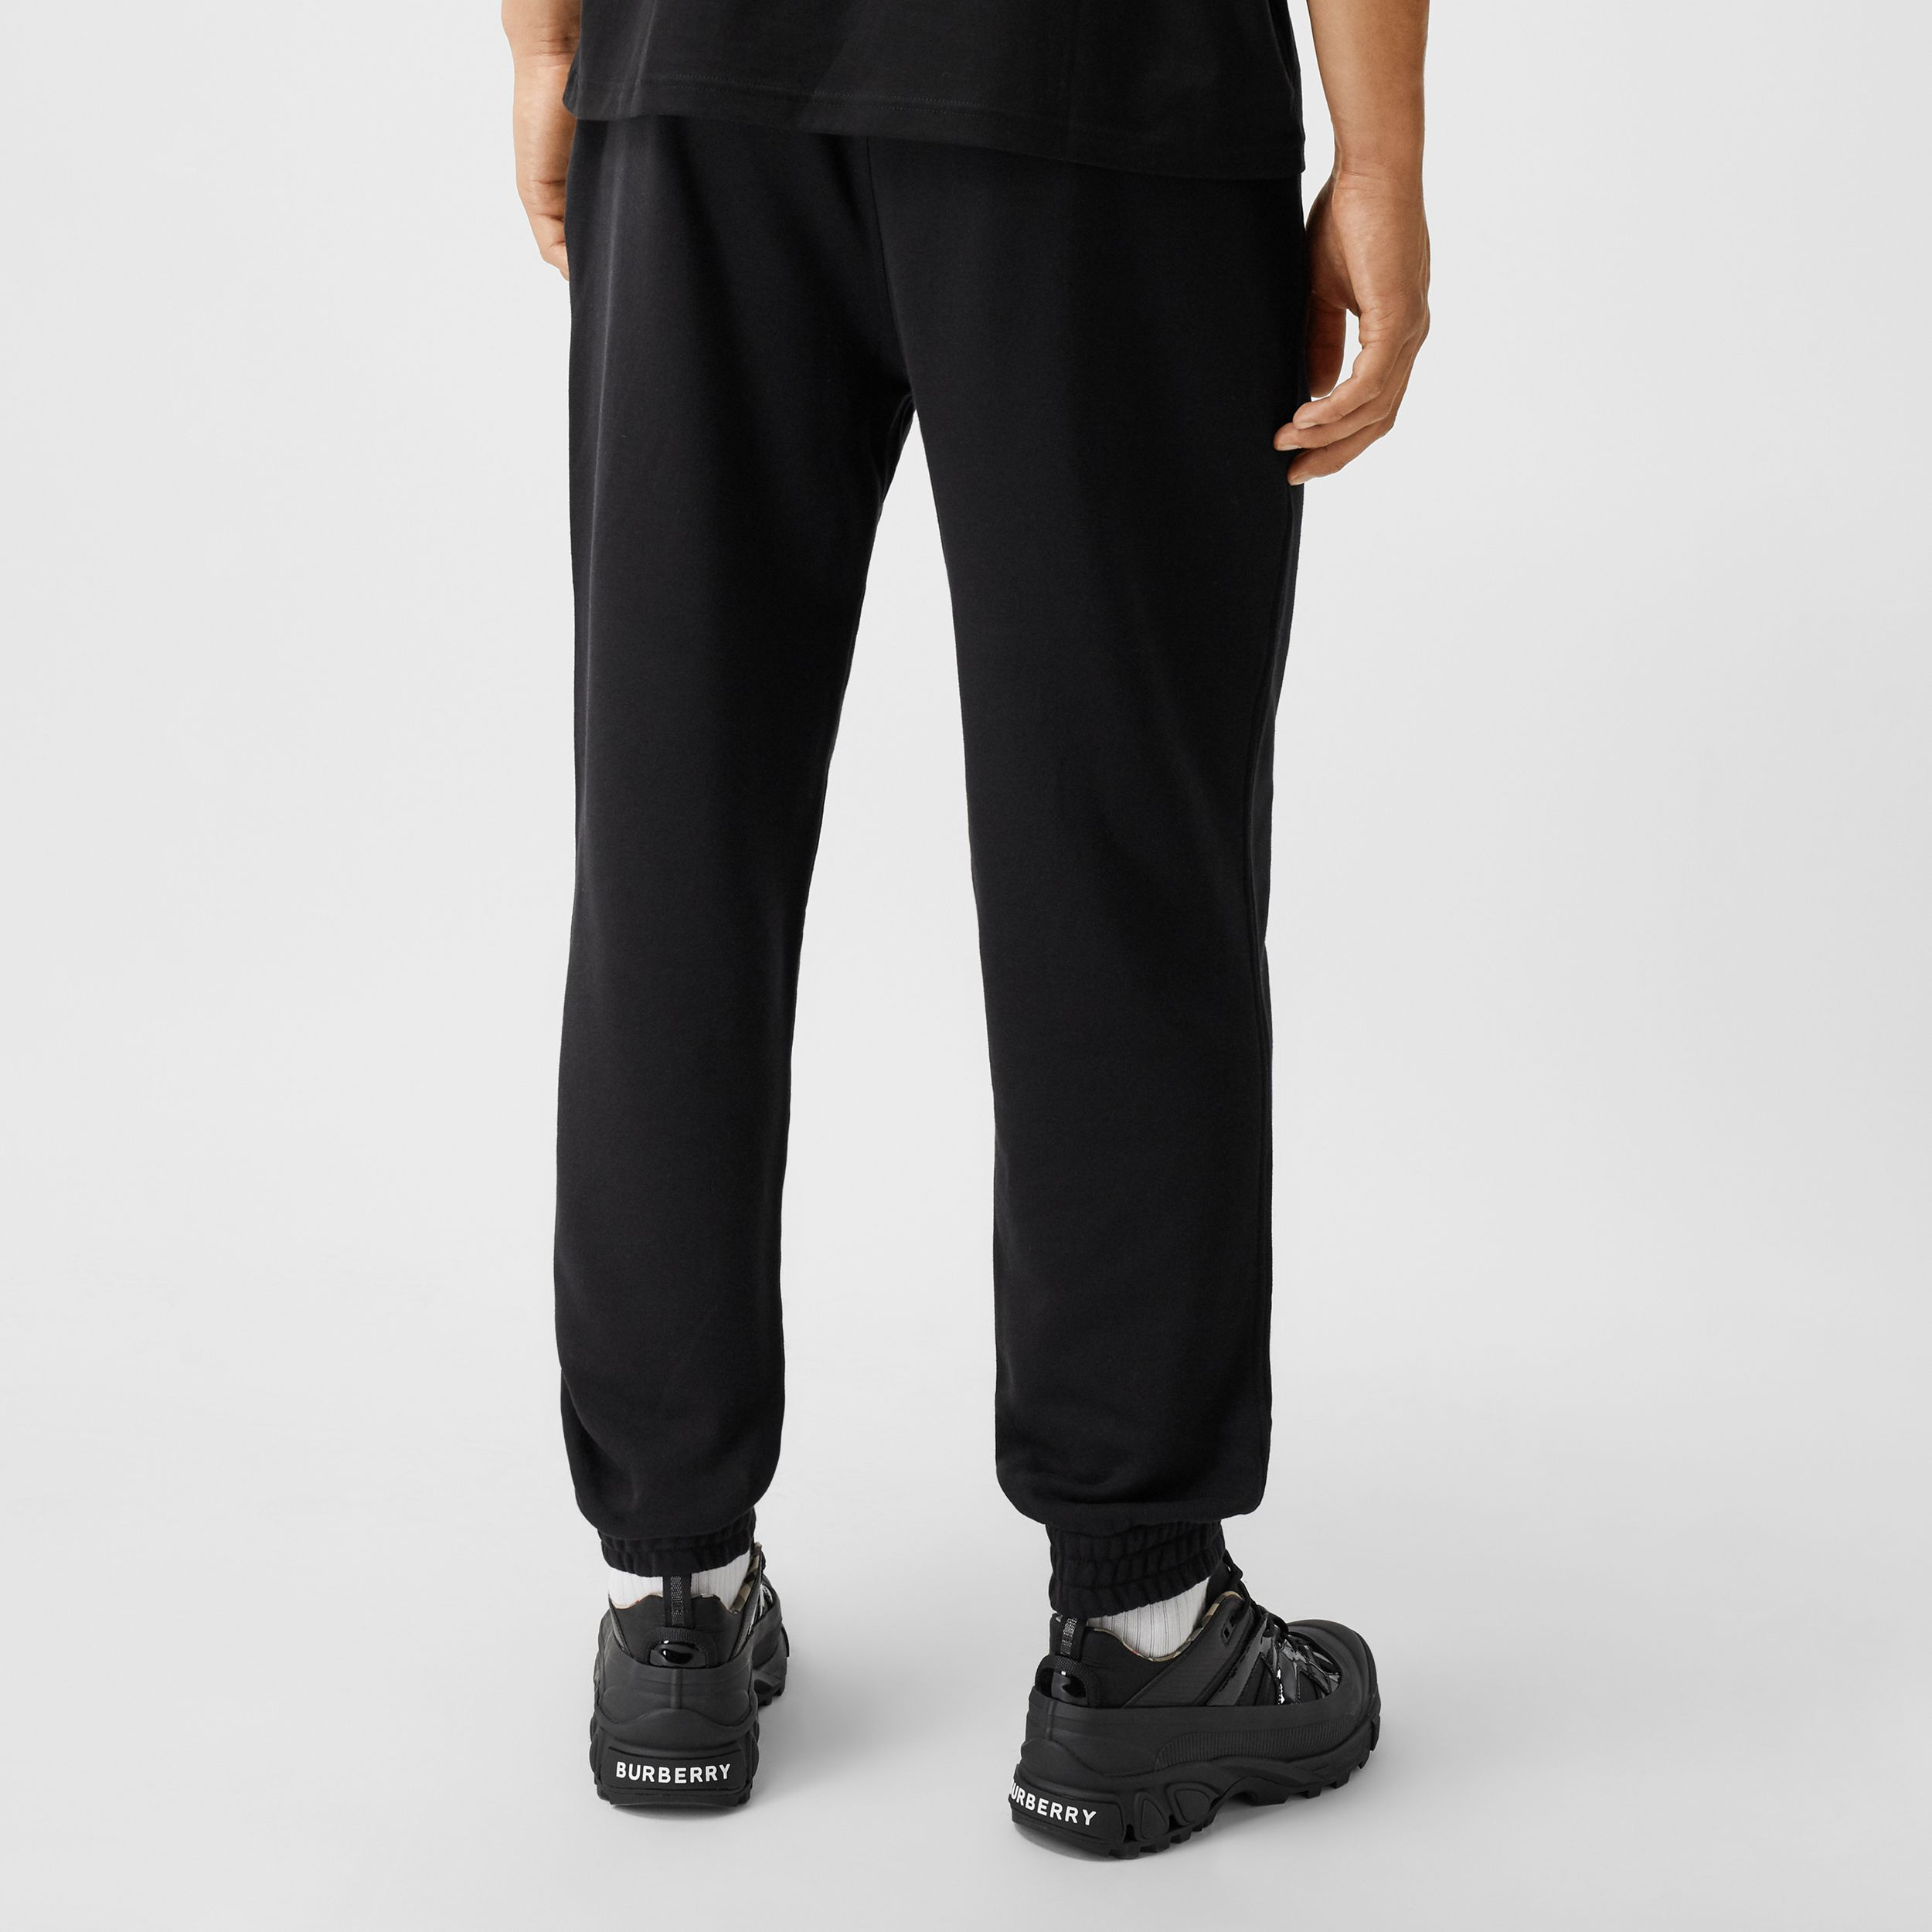 Logo Graphic Cotton Jogging Pants in Black - Men | Burberry - 3